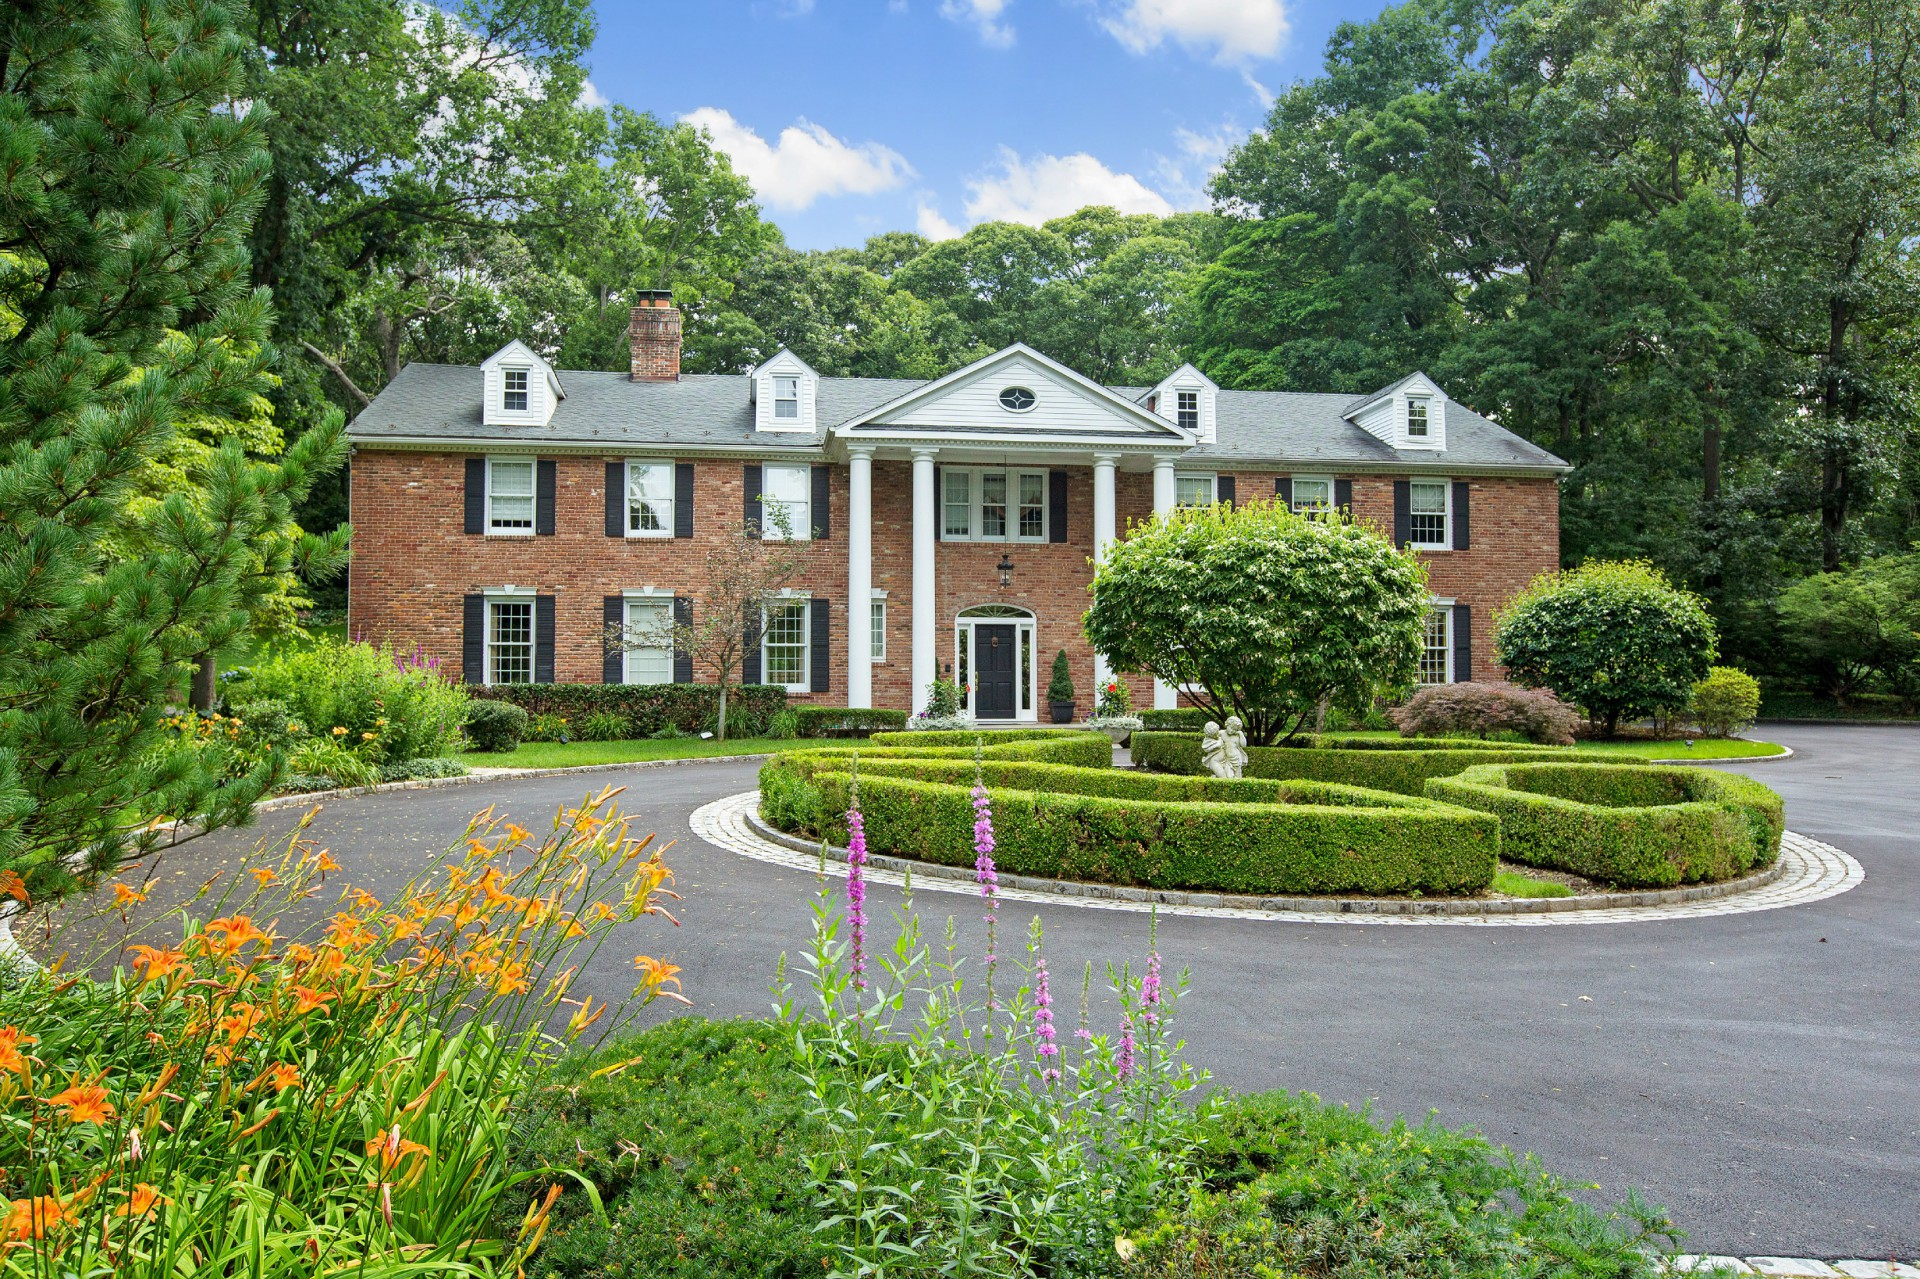 Single Family Home for Sale at Colonial 18 Rolling Hill Rd Old Westbury, New York 11568 United States